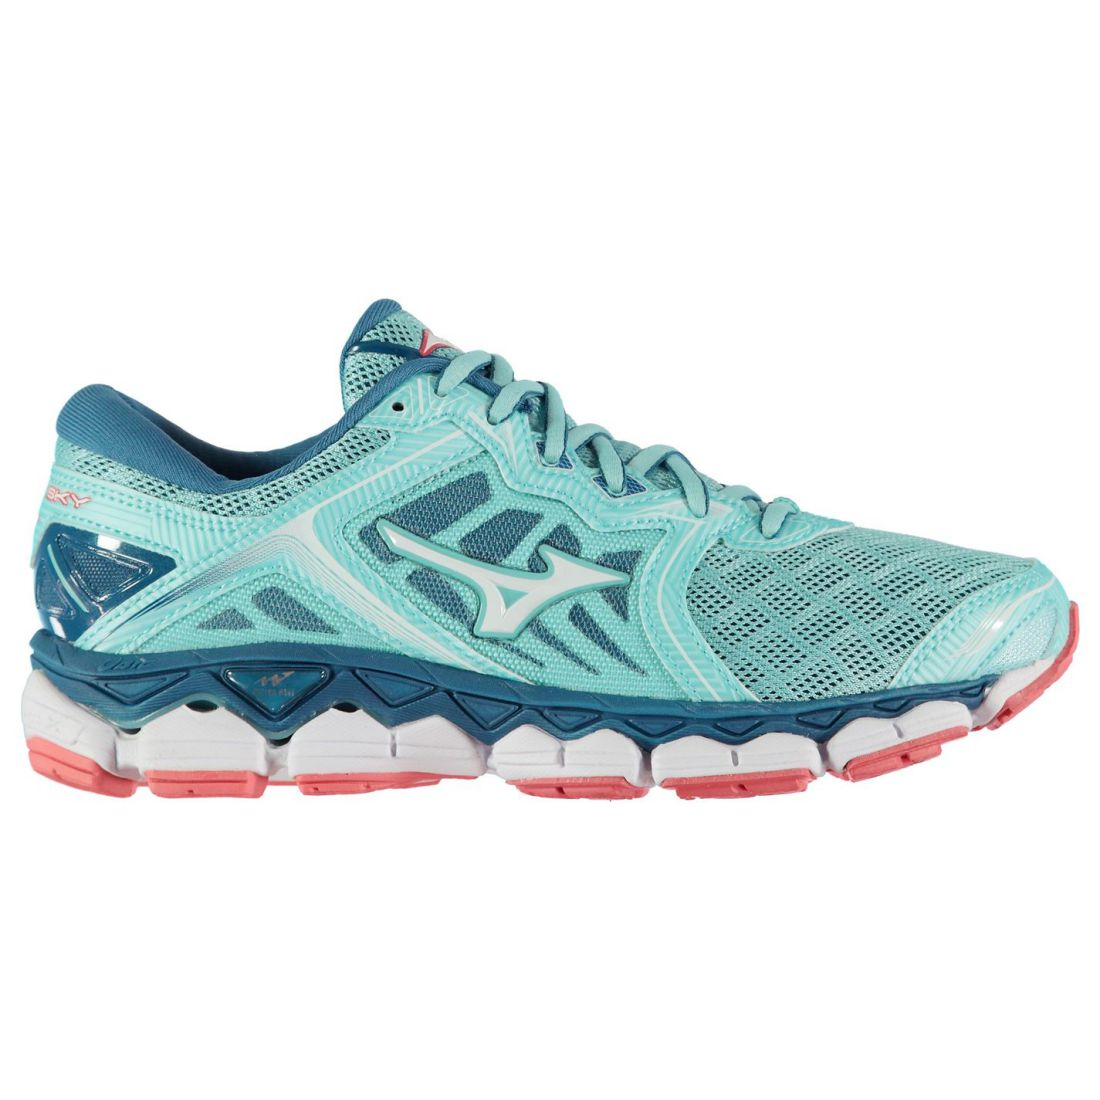 Womens Wave Sky Running shoes Road